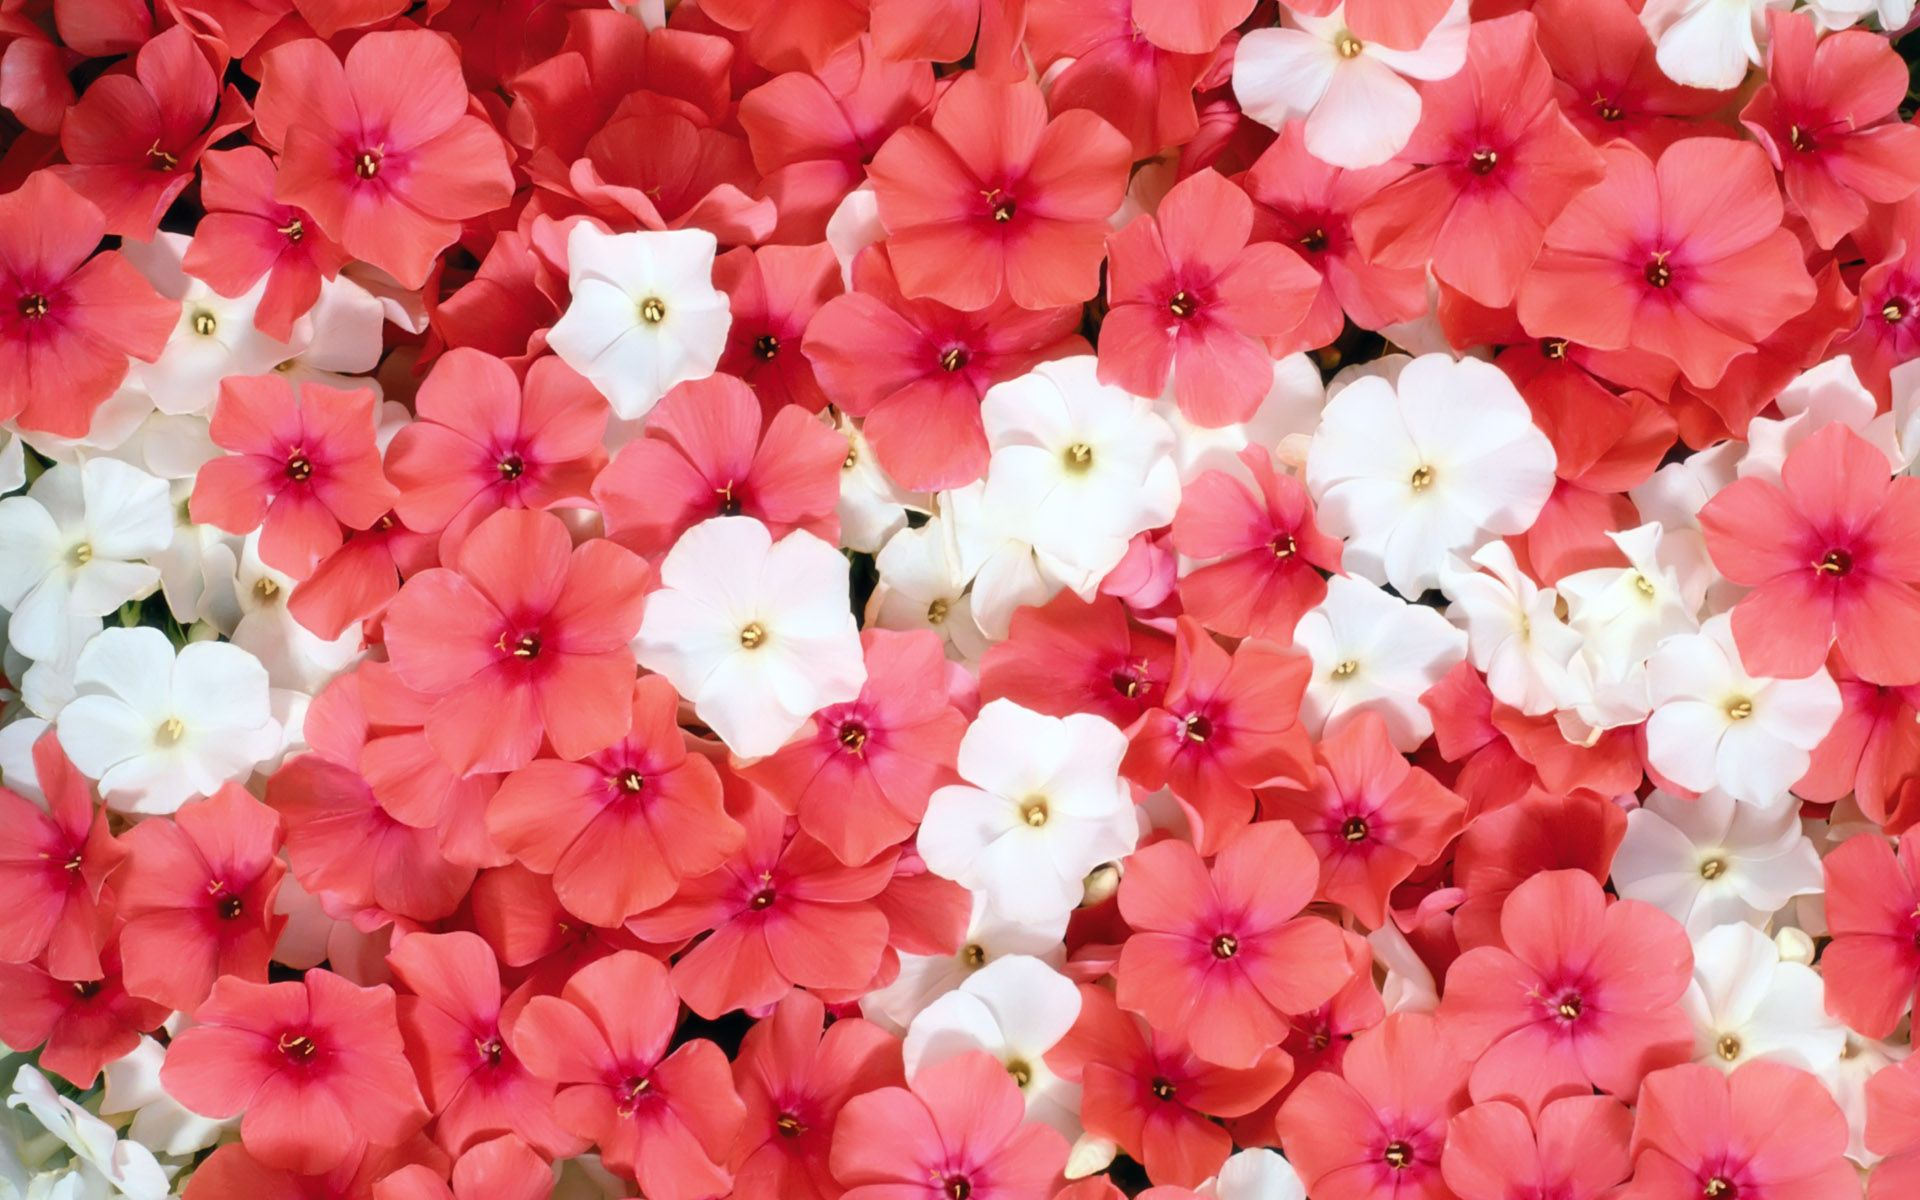 Pink Flowers 10277 1920x1200 Px Freewallsource